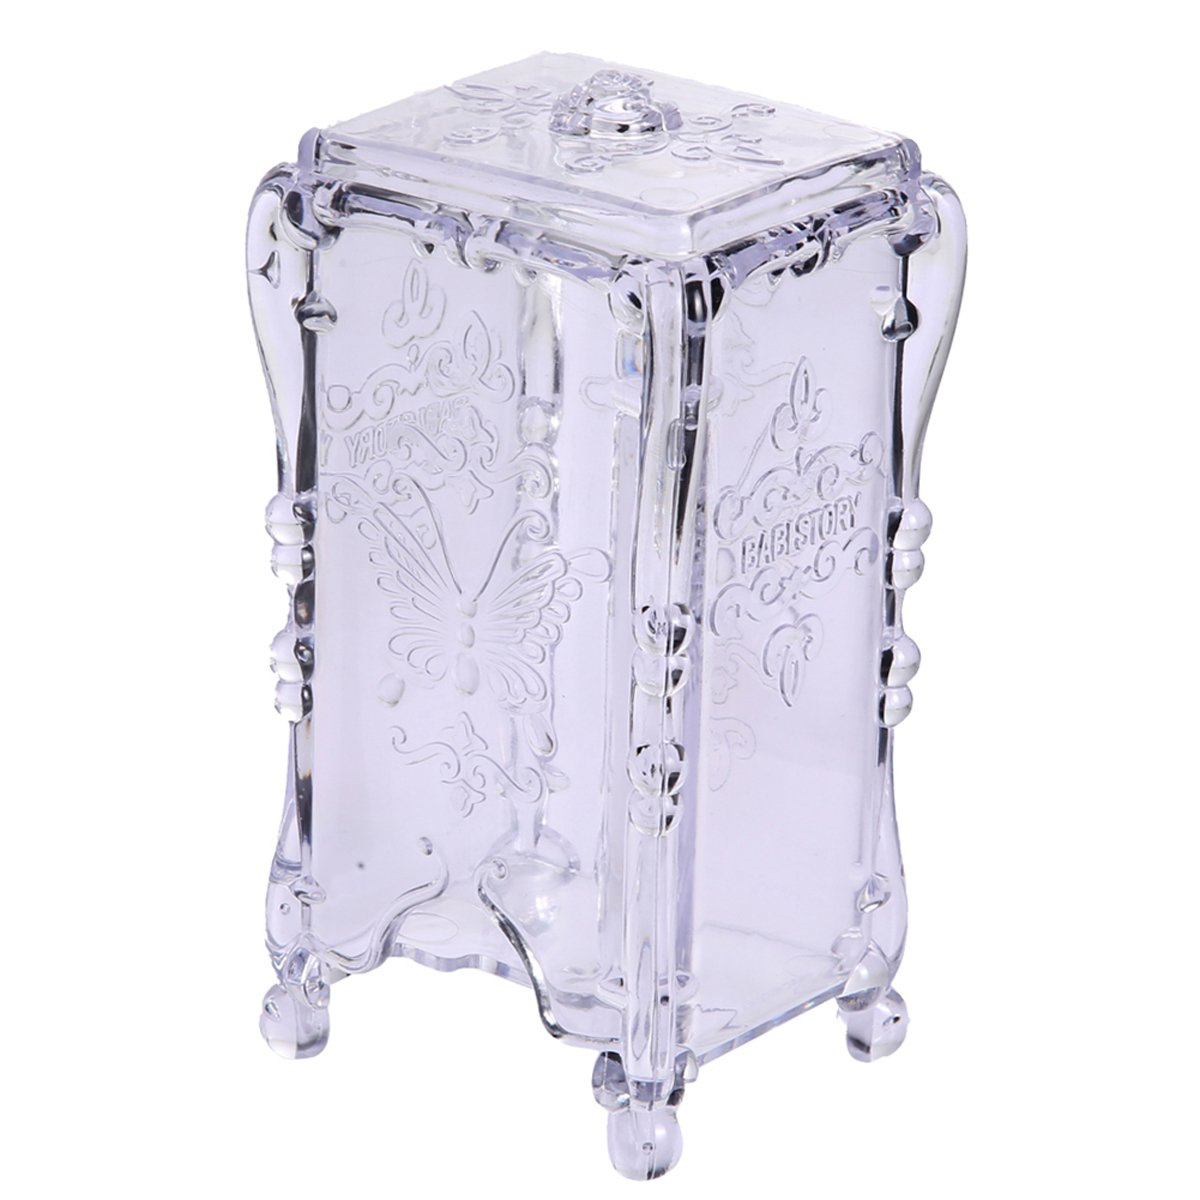 Jocestyle Makeup Cosmetic Cotton Pad Box Container Dispenser Clear Nail Art Remover Paper Storage Holder Organizer Case (02 Clear)